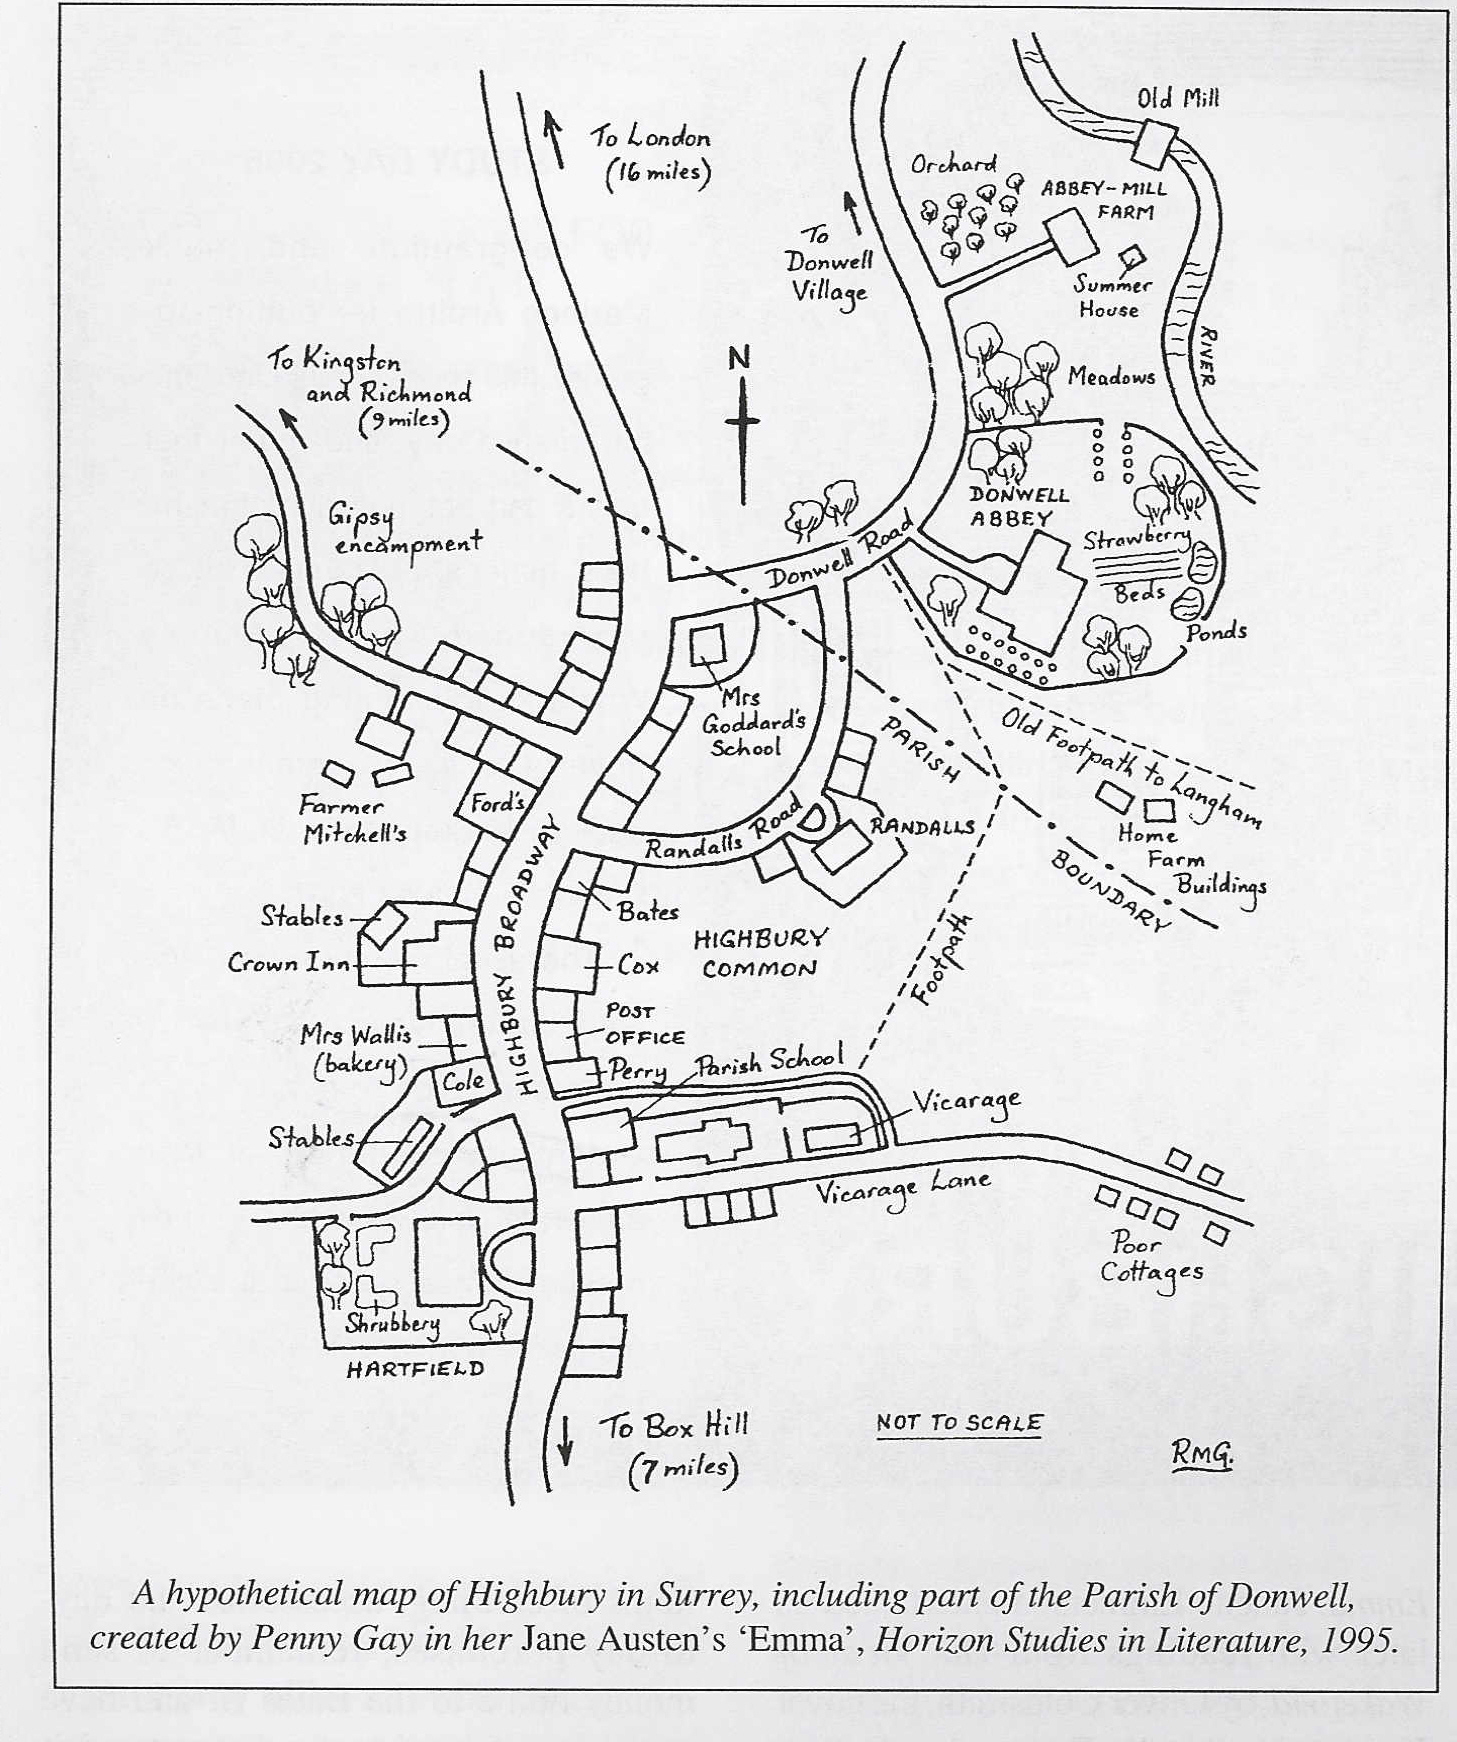 penny gay map of highbury click on image to see larger version